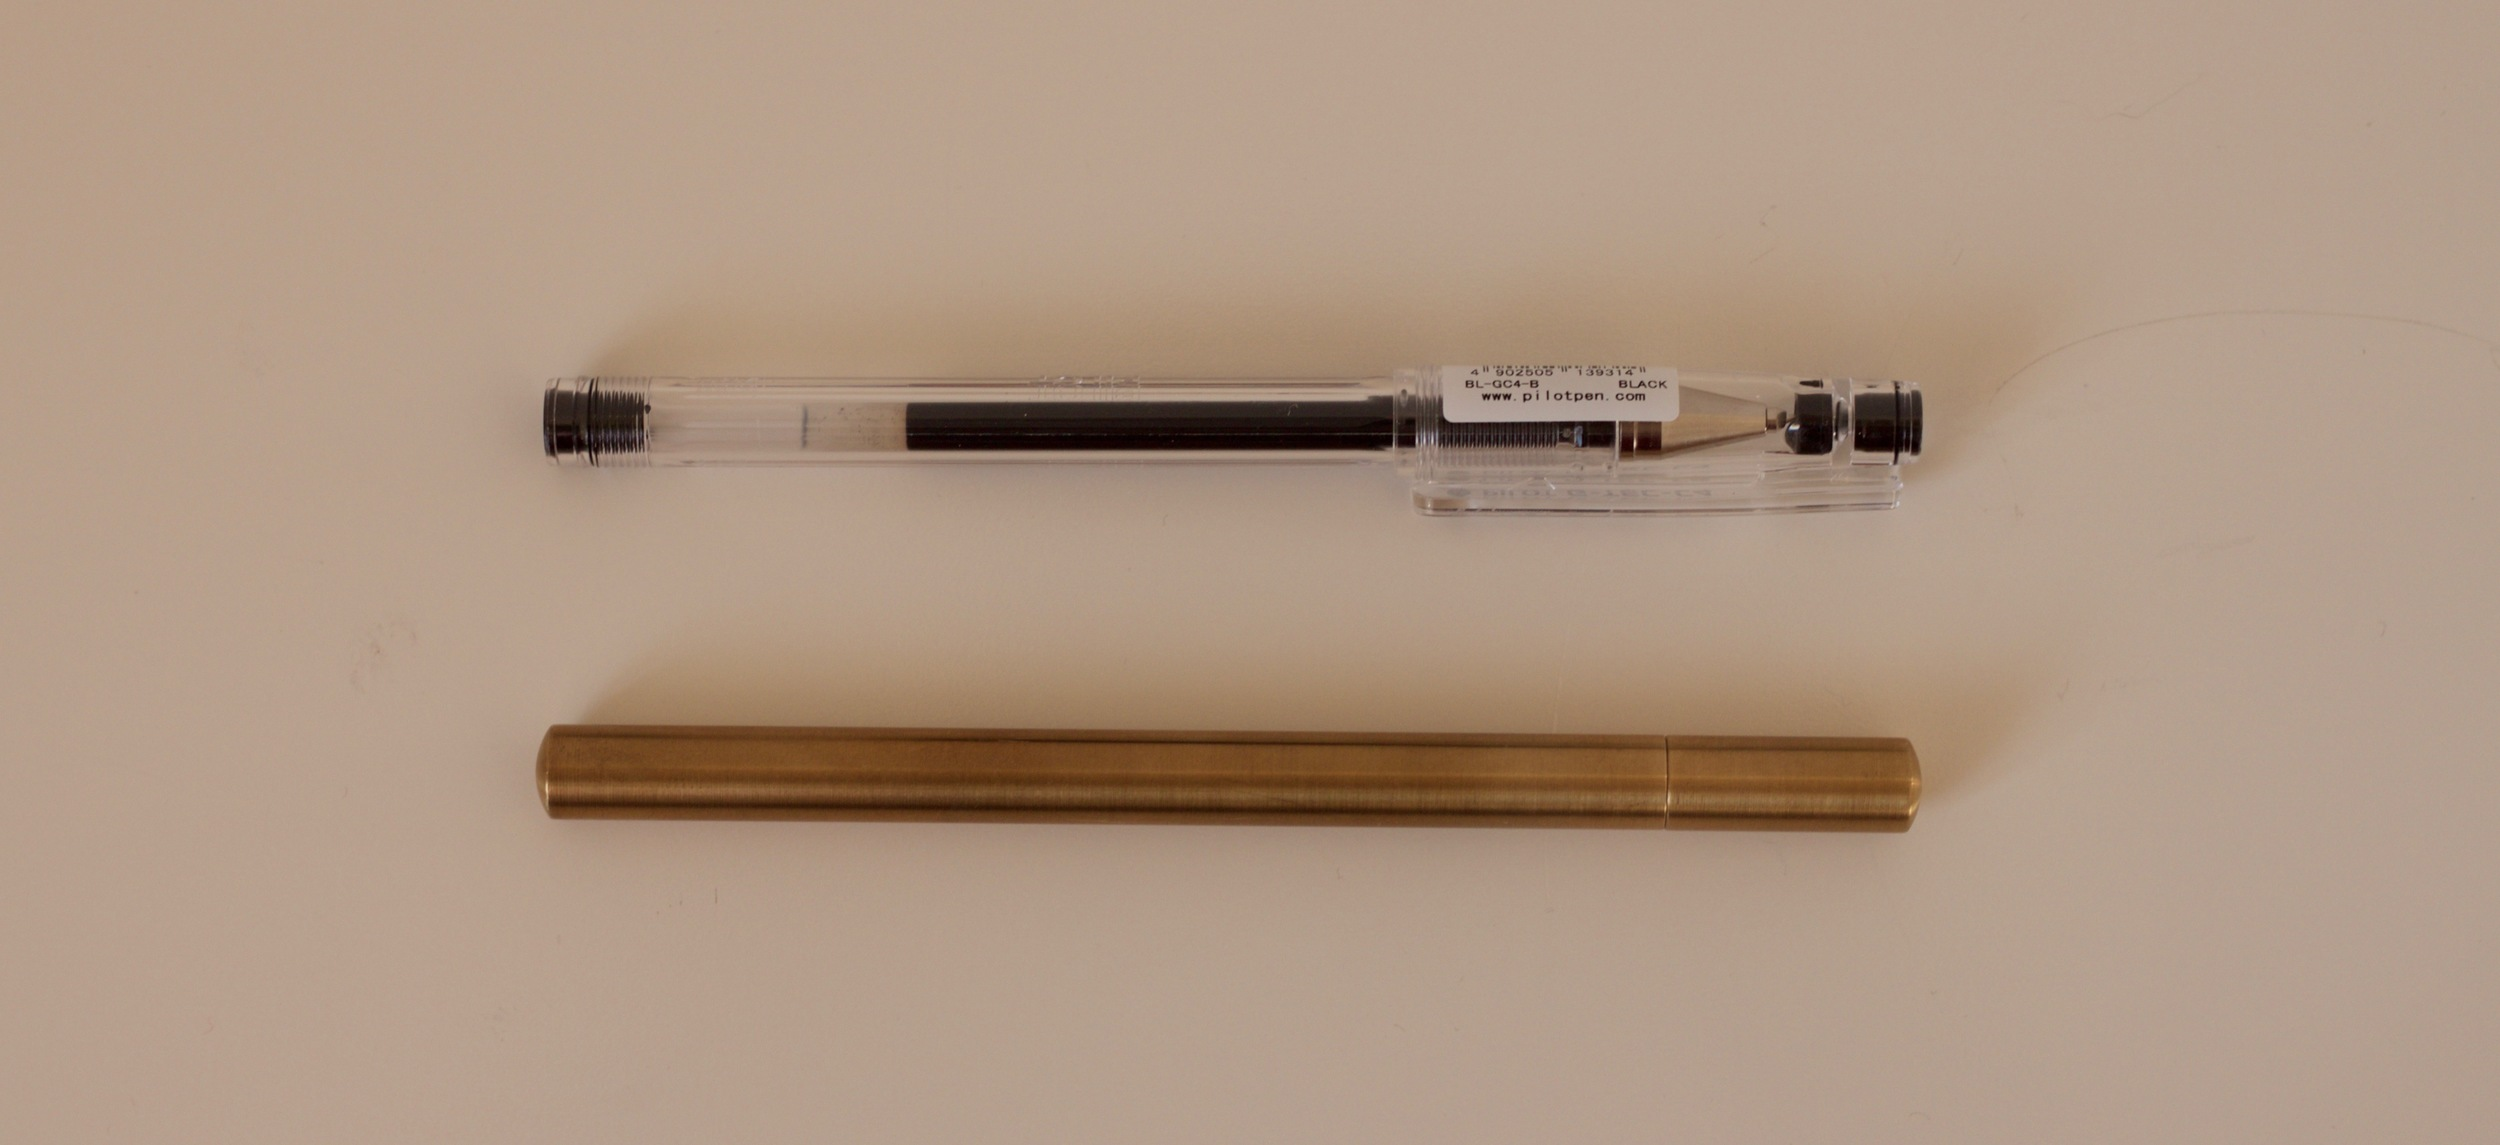 The Pilot Hi-Tec-C in it's standard housing compared to the Ateleia Brass Pen